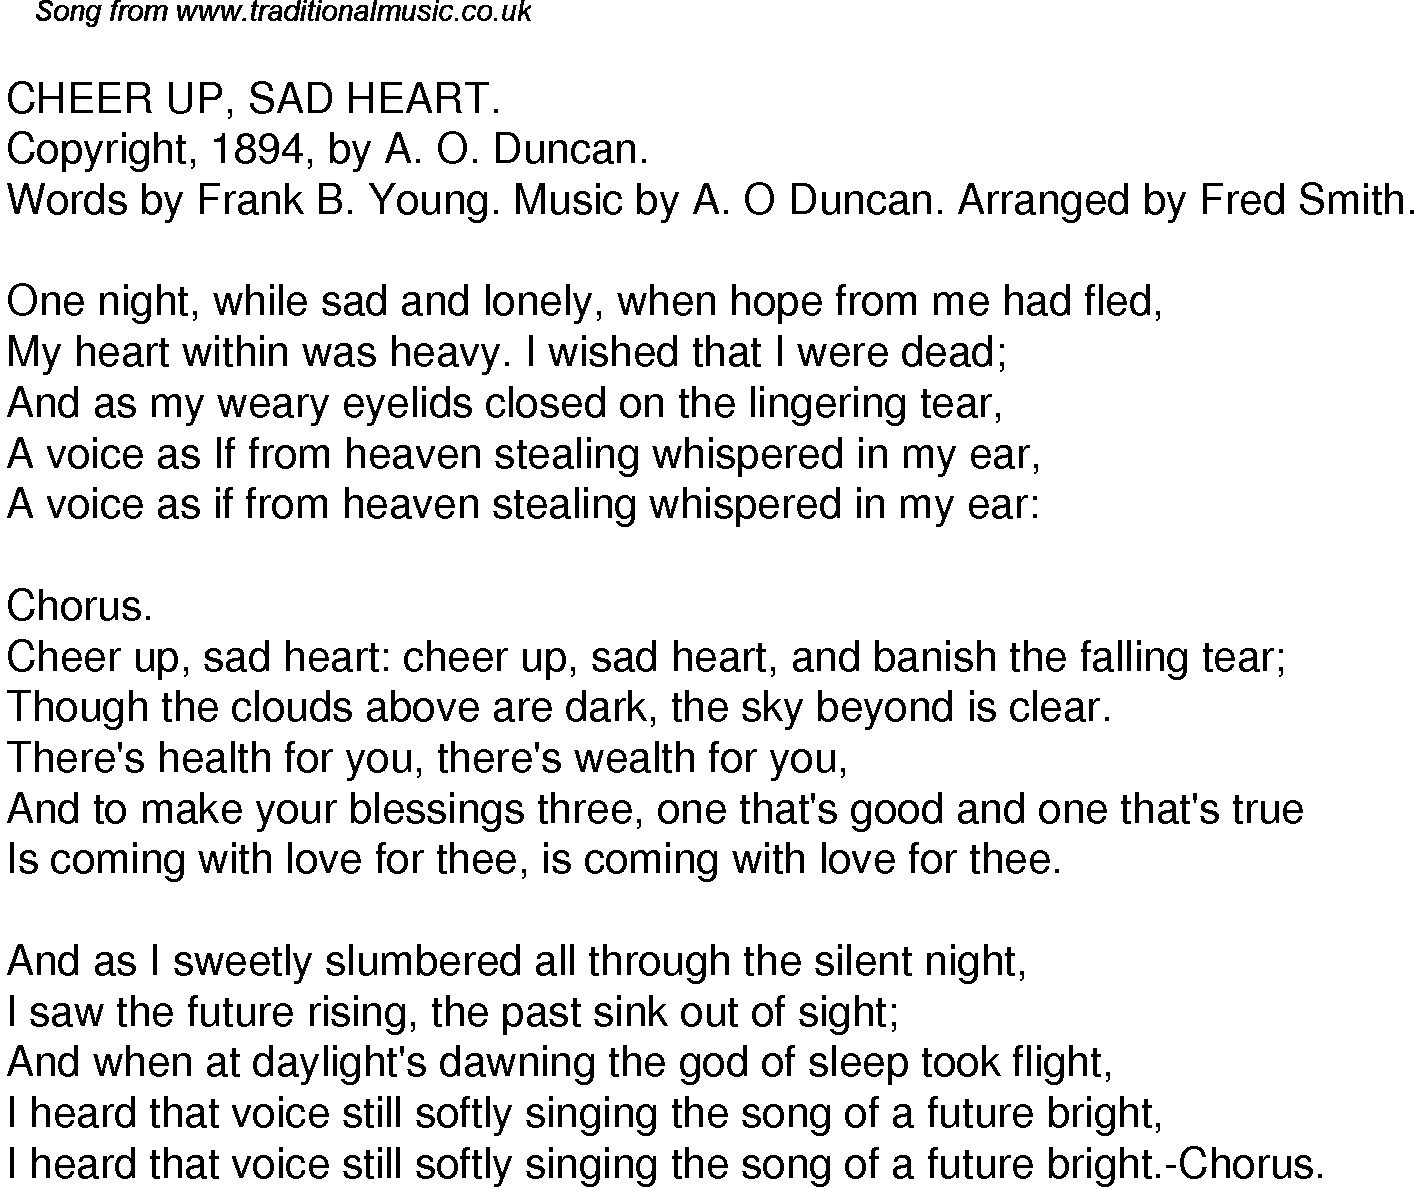 Old Time Song Lyrics For 45 Cheer Up Sad Heart